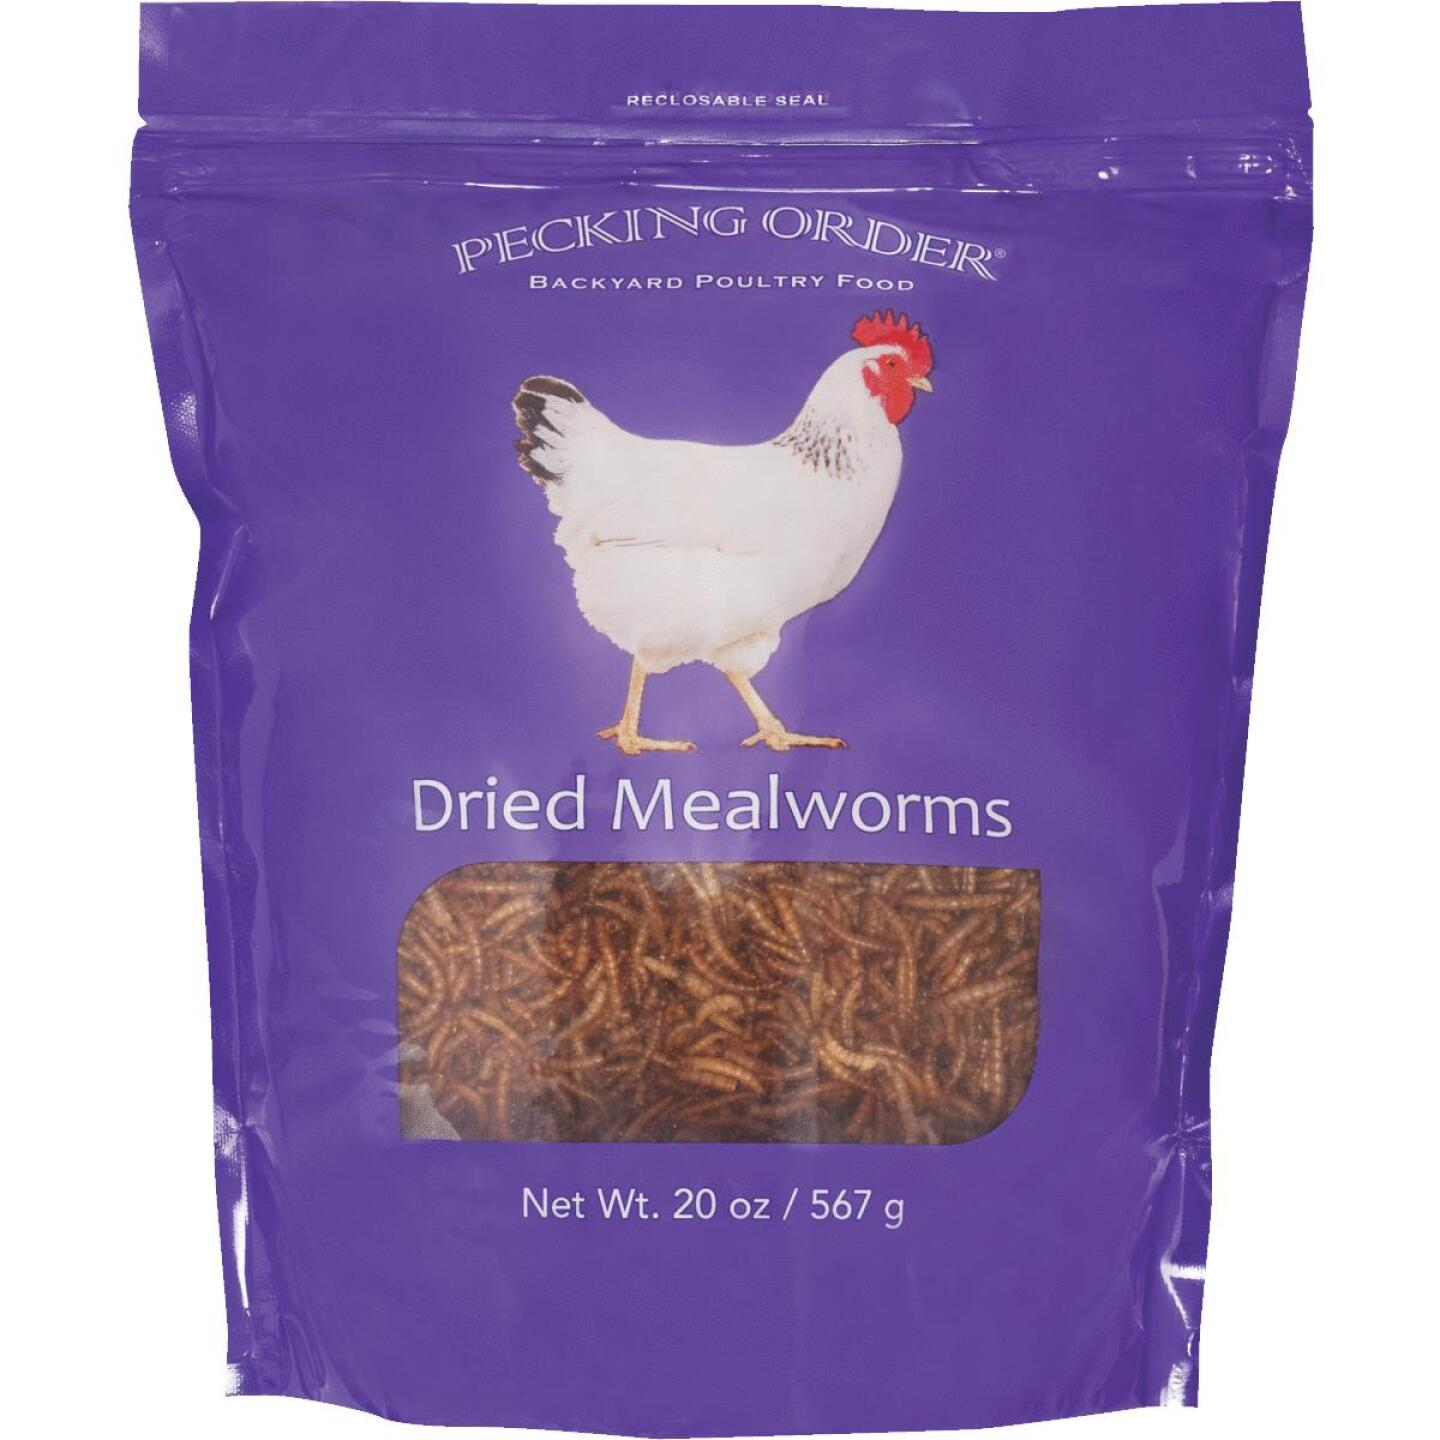 Pecking Order 20 Oz. Dried Mealworms Chicken Treat Image 1